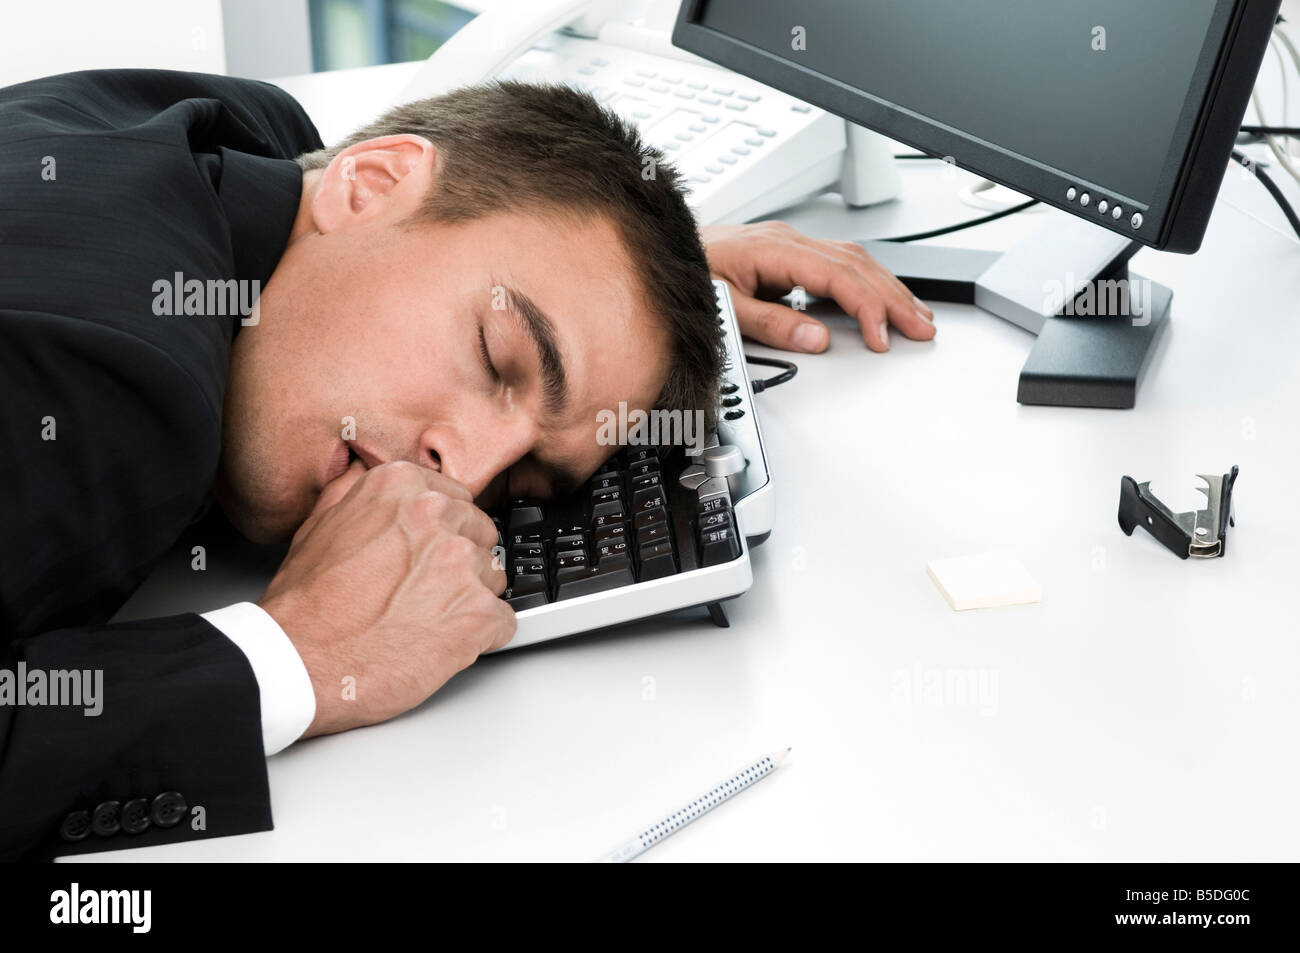 Businessman sleeping at workplace, close up - Stock Image